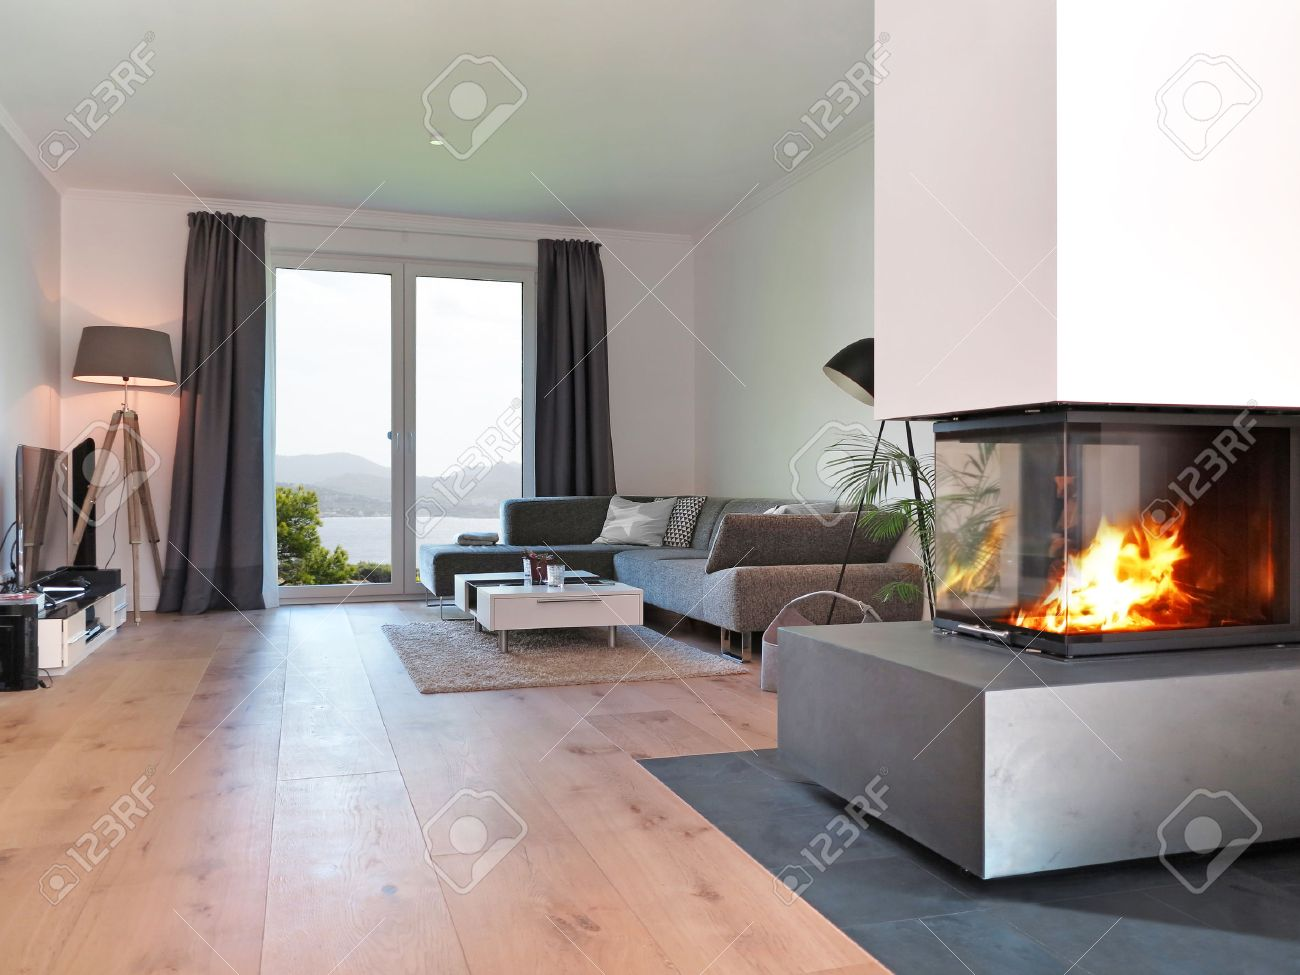 Stock Photo Modern Living Room With Fireplace And A View To The Coast